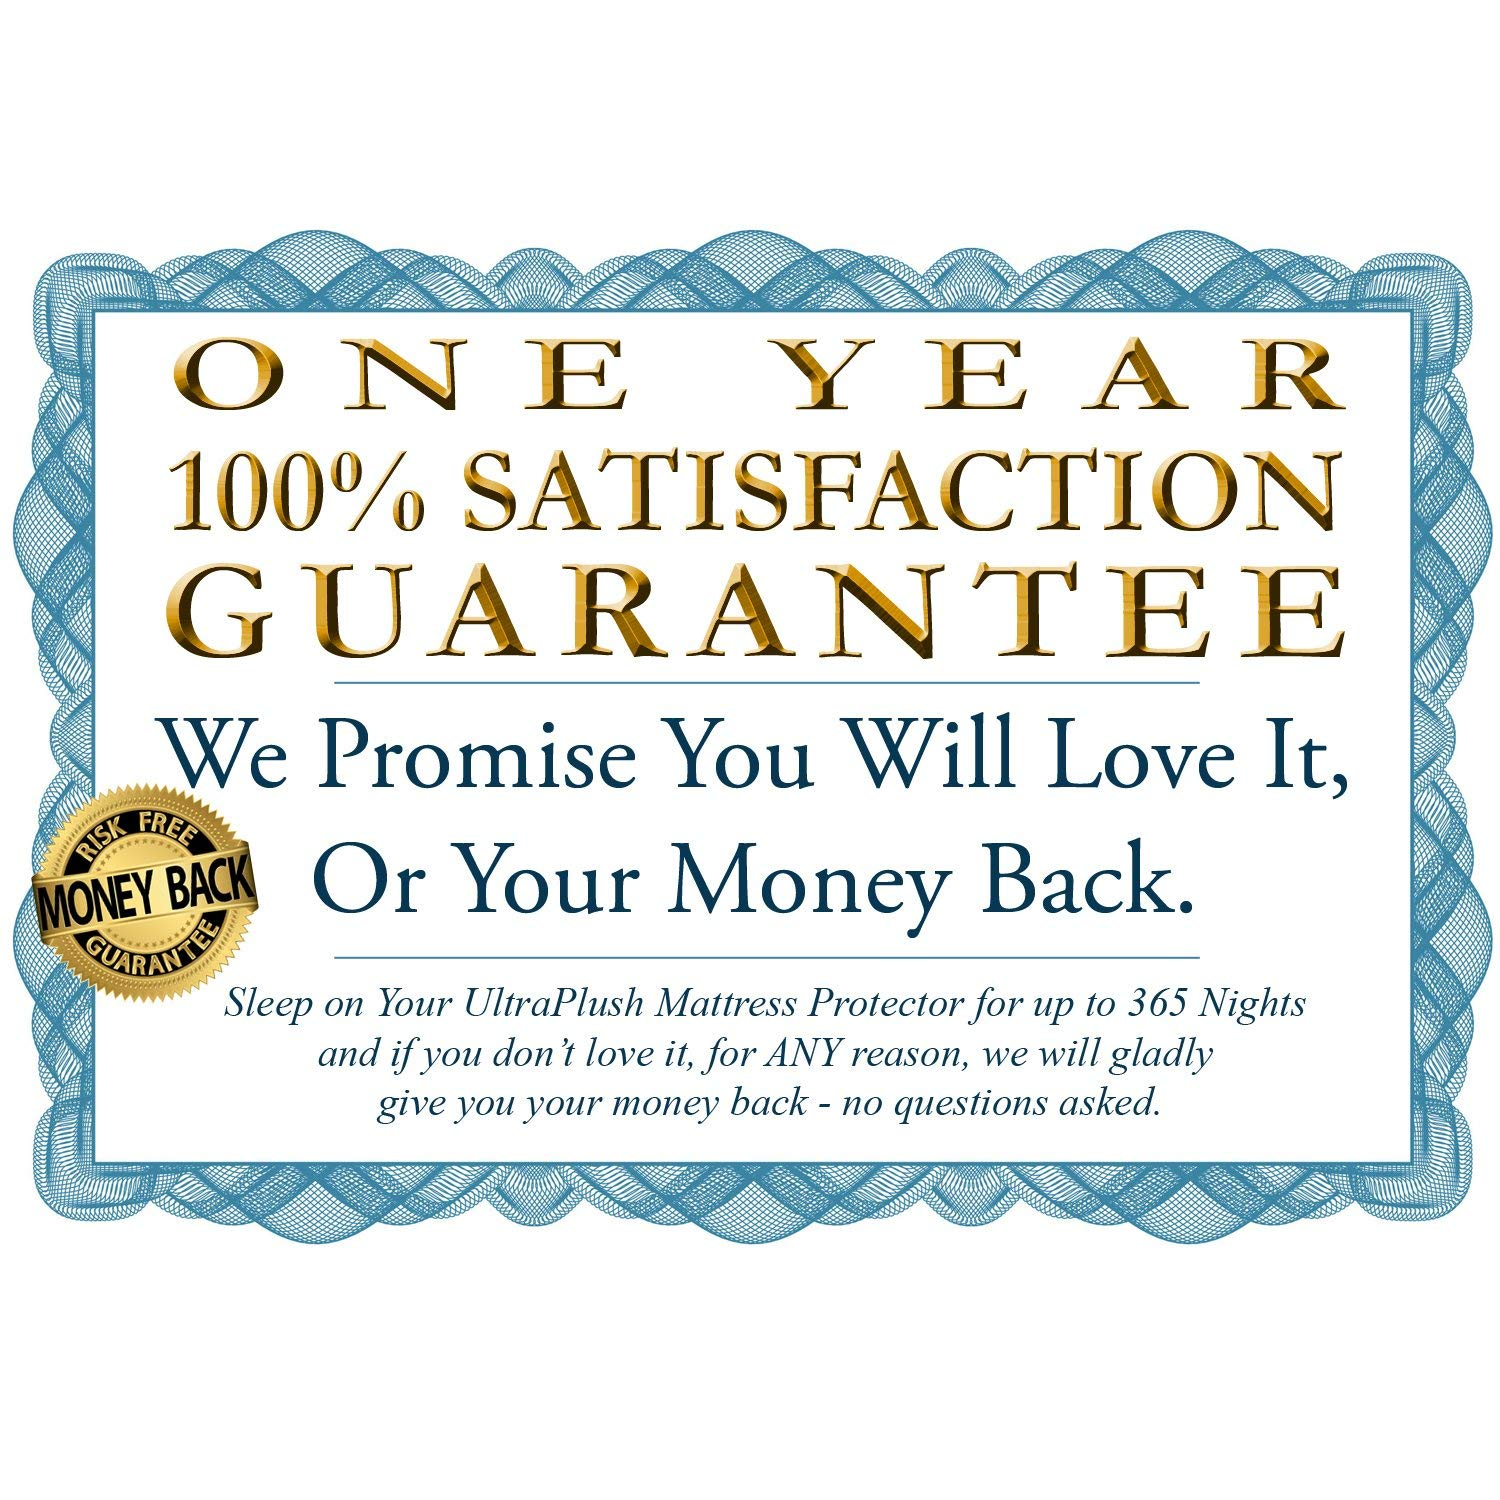 100% money back guarantee on UltraPlush Premium Mattress Protector